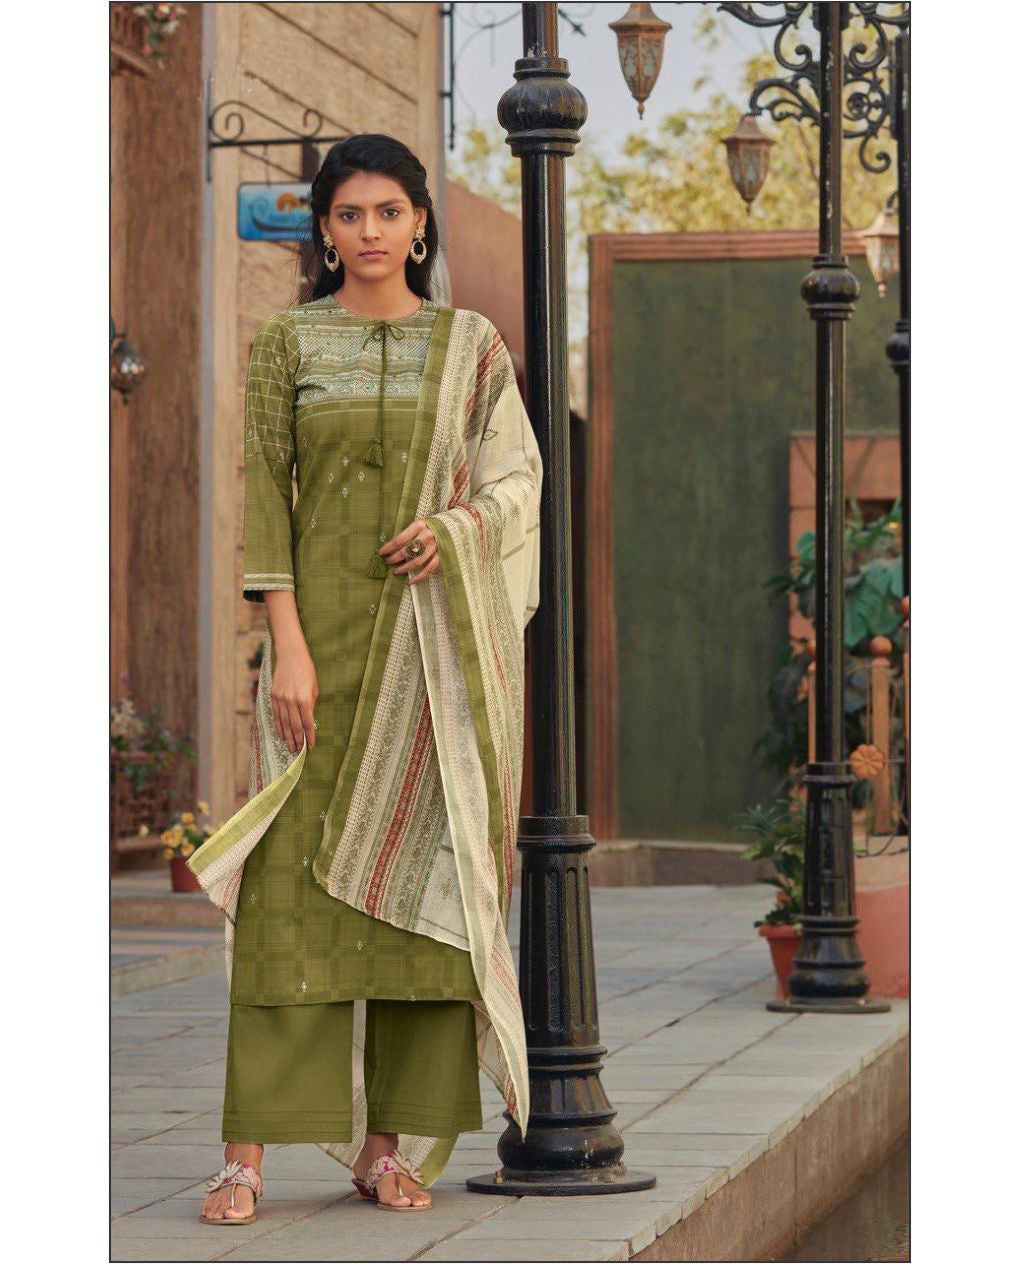 Mehandi Green Printed Cotton Suit Fabric Set With Mirror Work